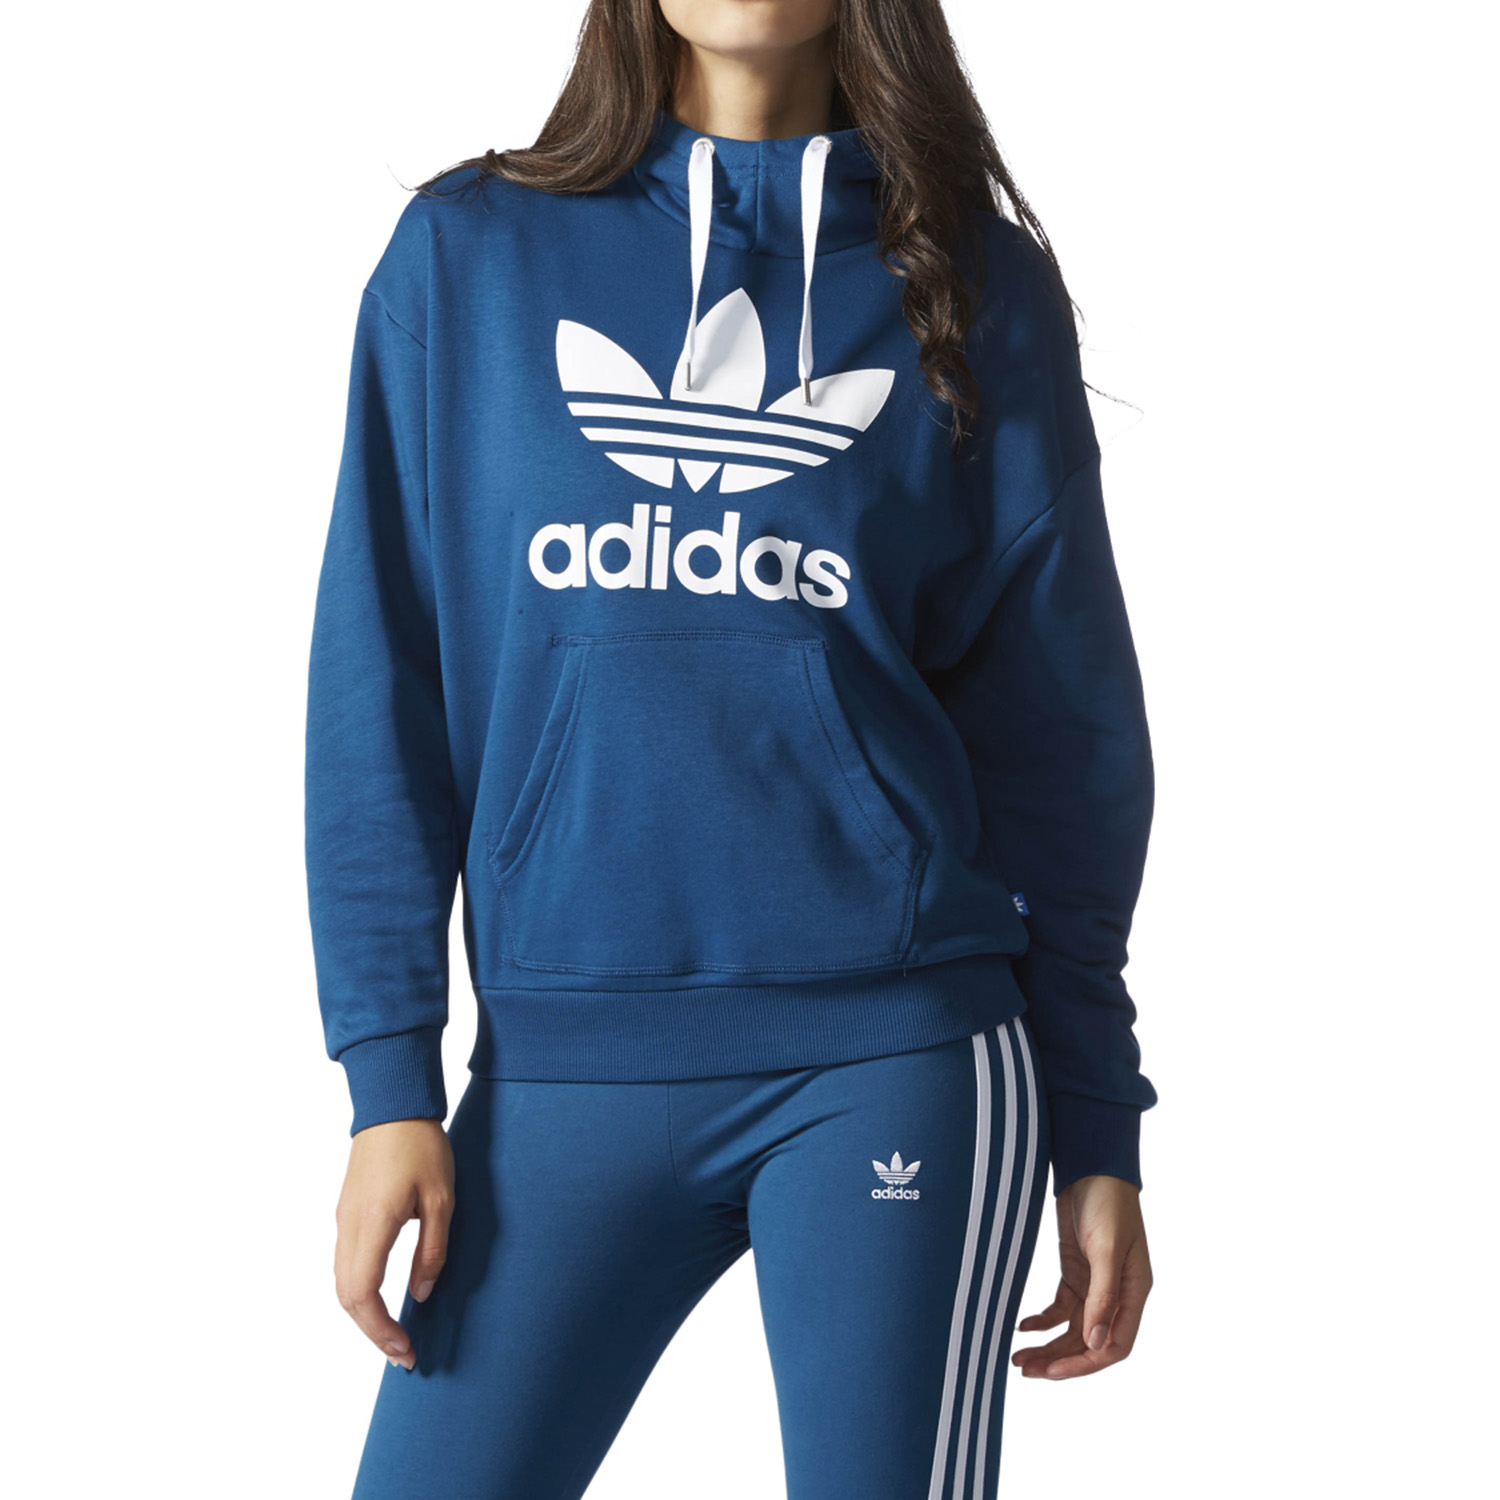 Womens adidas Originals Clothing | Lady Foot Locker